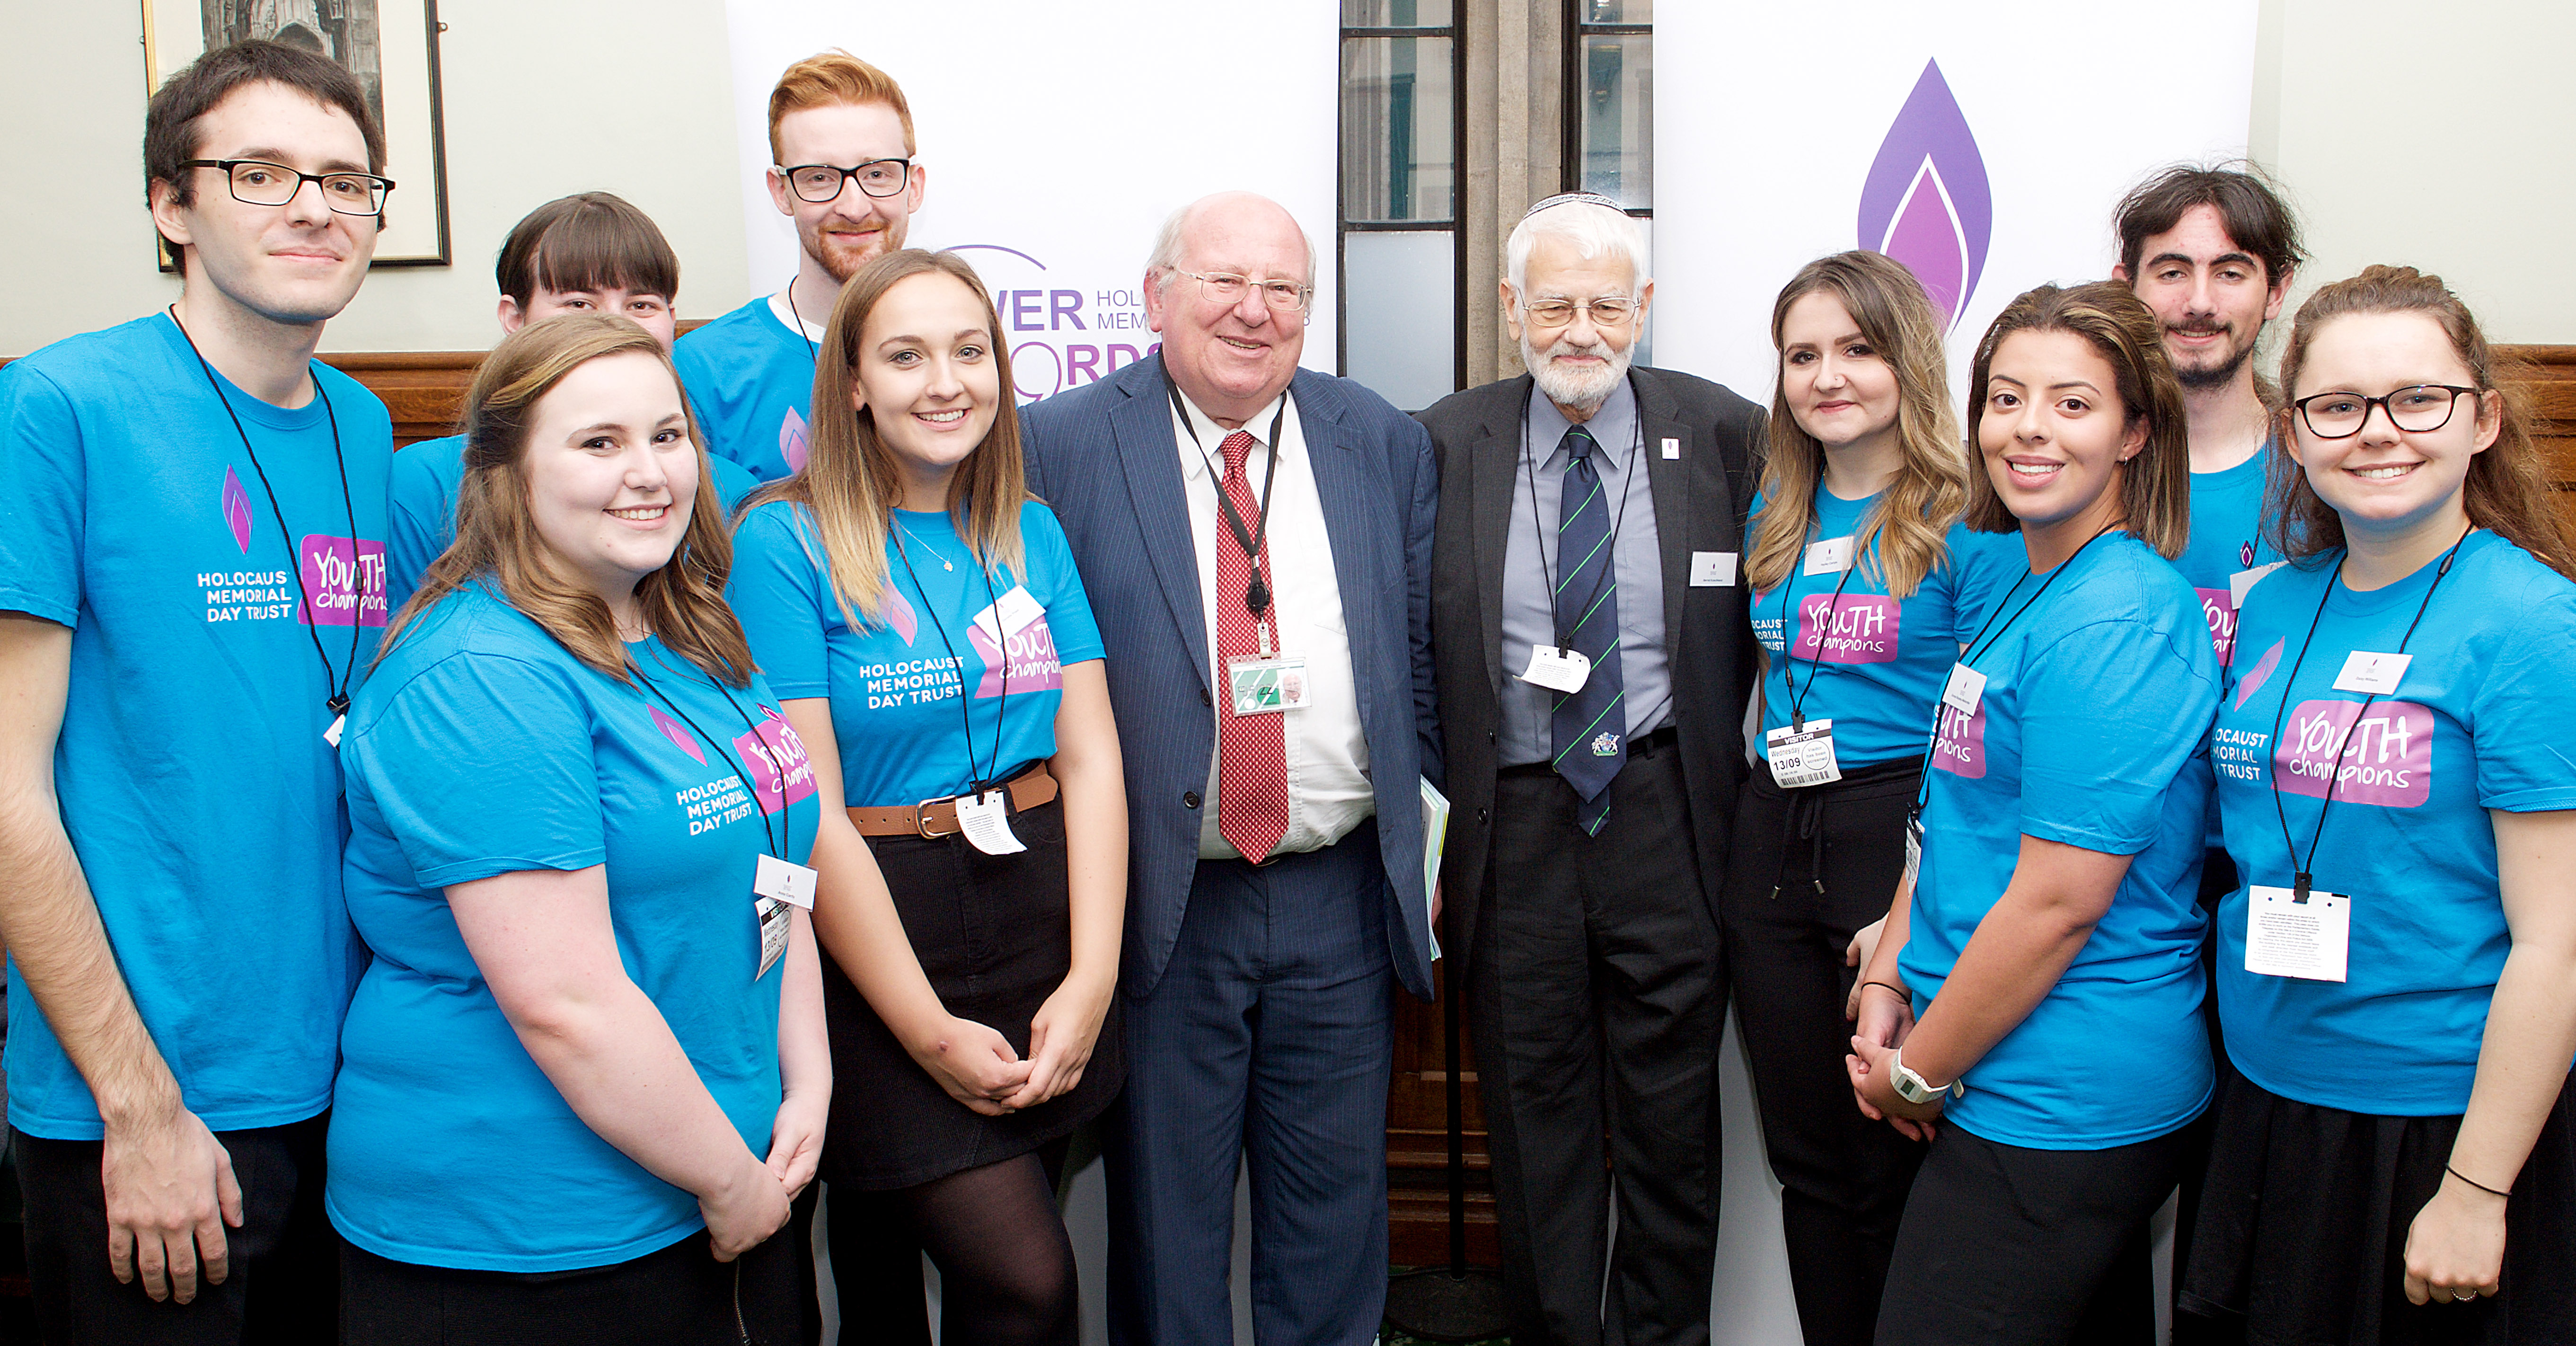 Michael_Gapes_MP_with_Bernd_Koschland_and_Youth_Champions_2.jpg